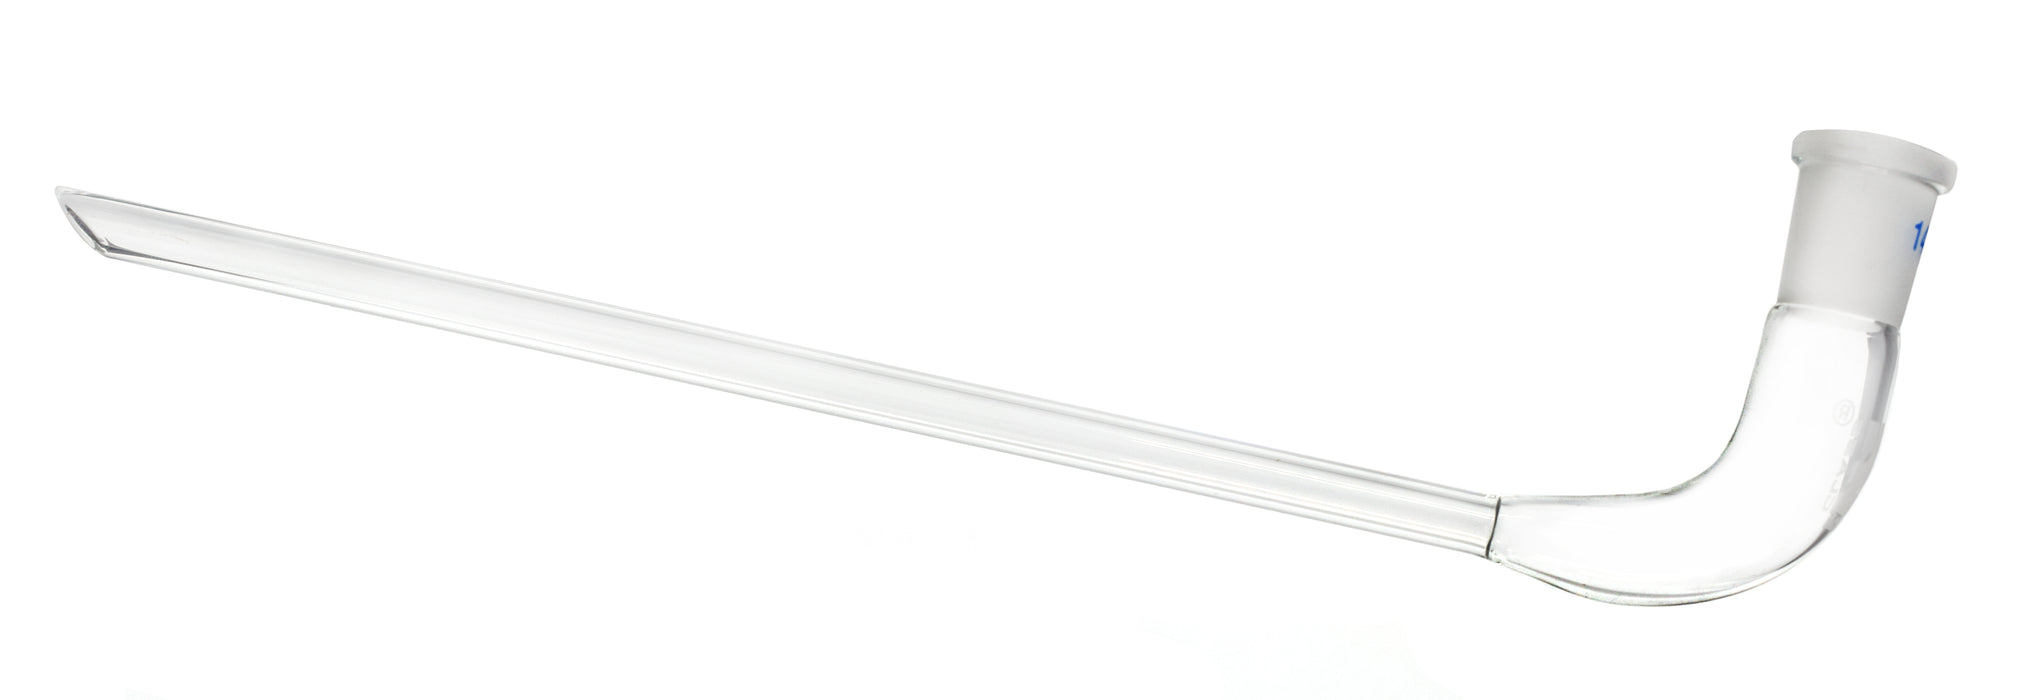 Receiver Delivery Adaptor, Long Stem - Socket Size: 14/23 - Body Length, 65mm - Borosilicate Glass - Eisco Labs